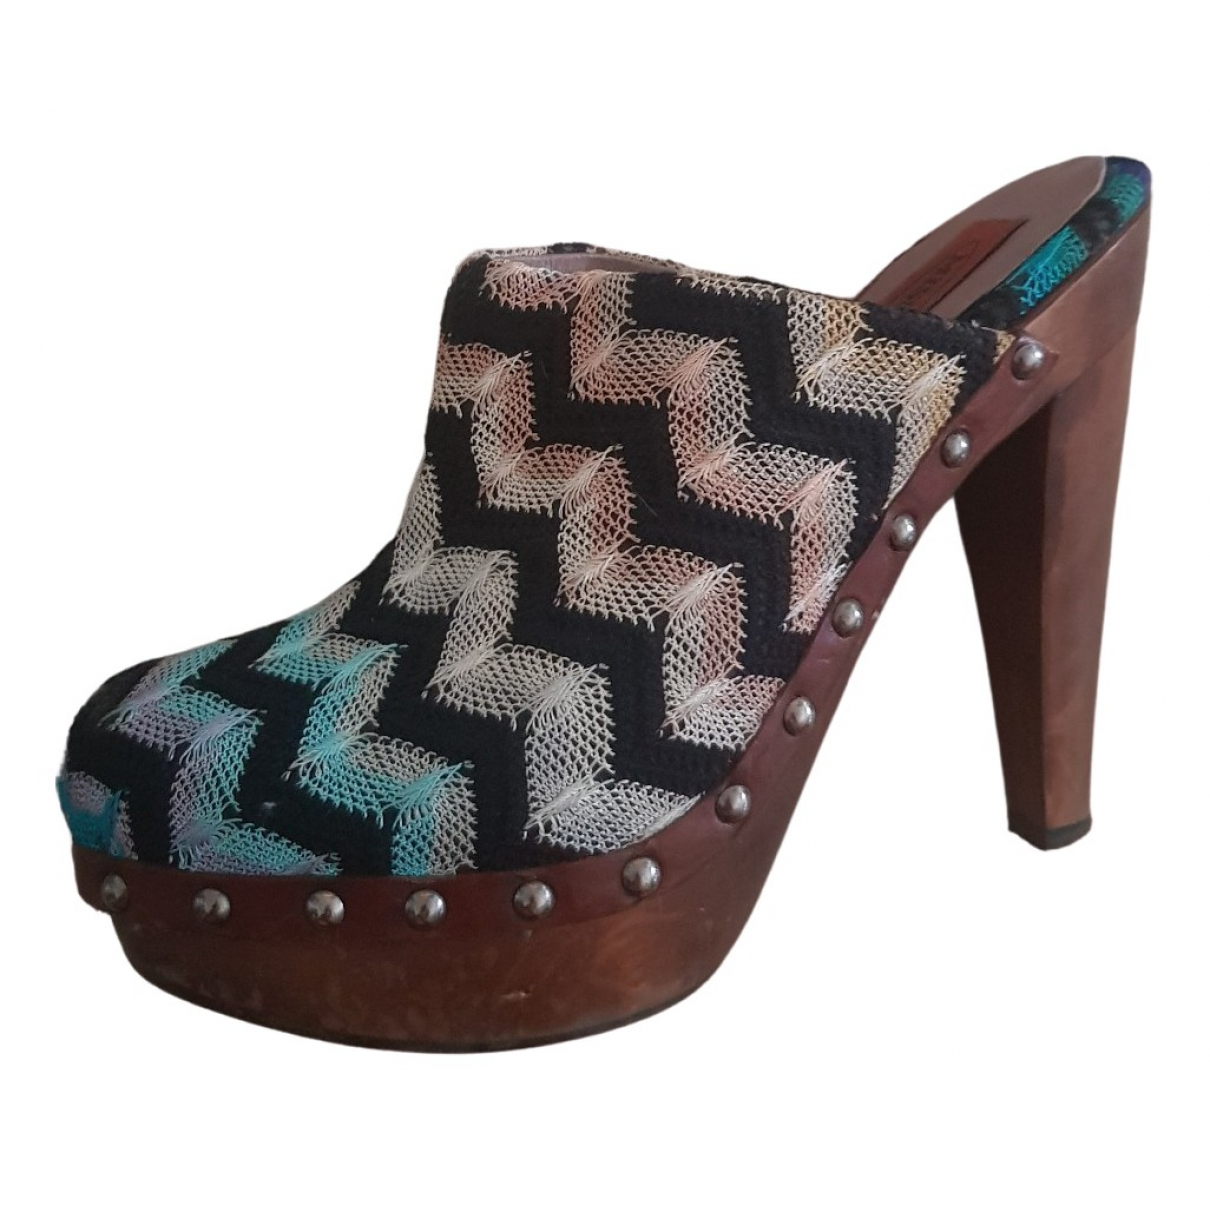 Missoni \N Multicolour Leather Mules & Clogs for Women 37 EU